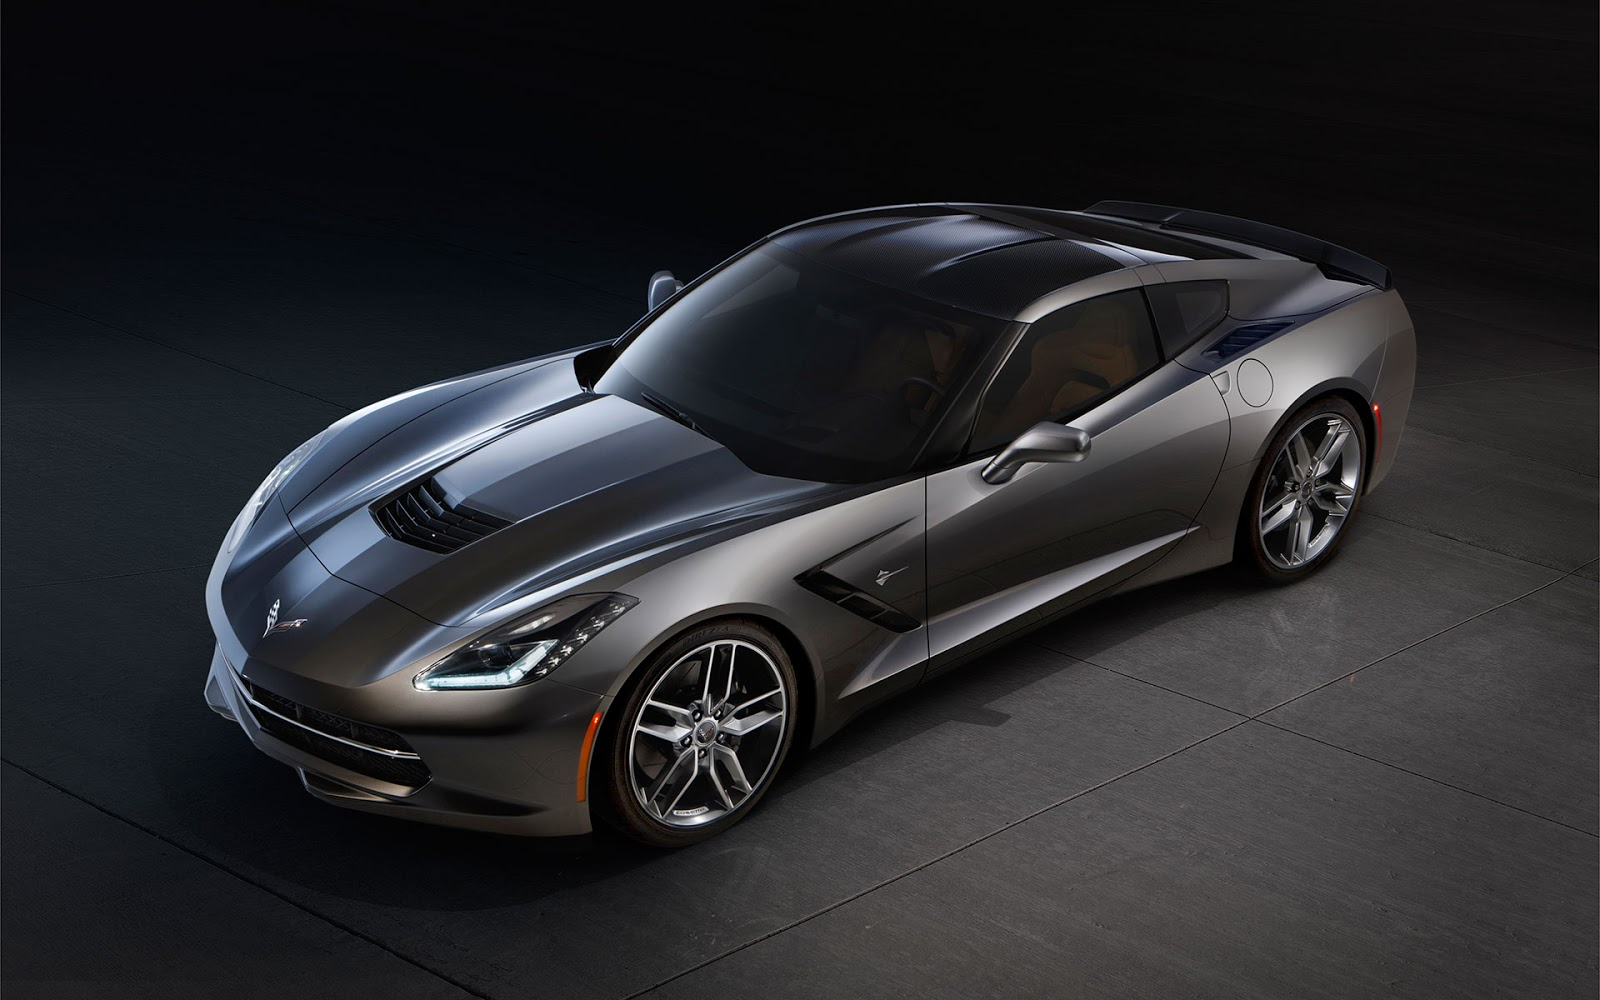 Tech   Boxfox1com The 2014 Chevrolet Corvette Stingray   Wallpapers 1600x1000